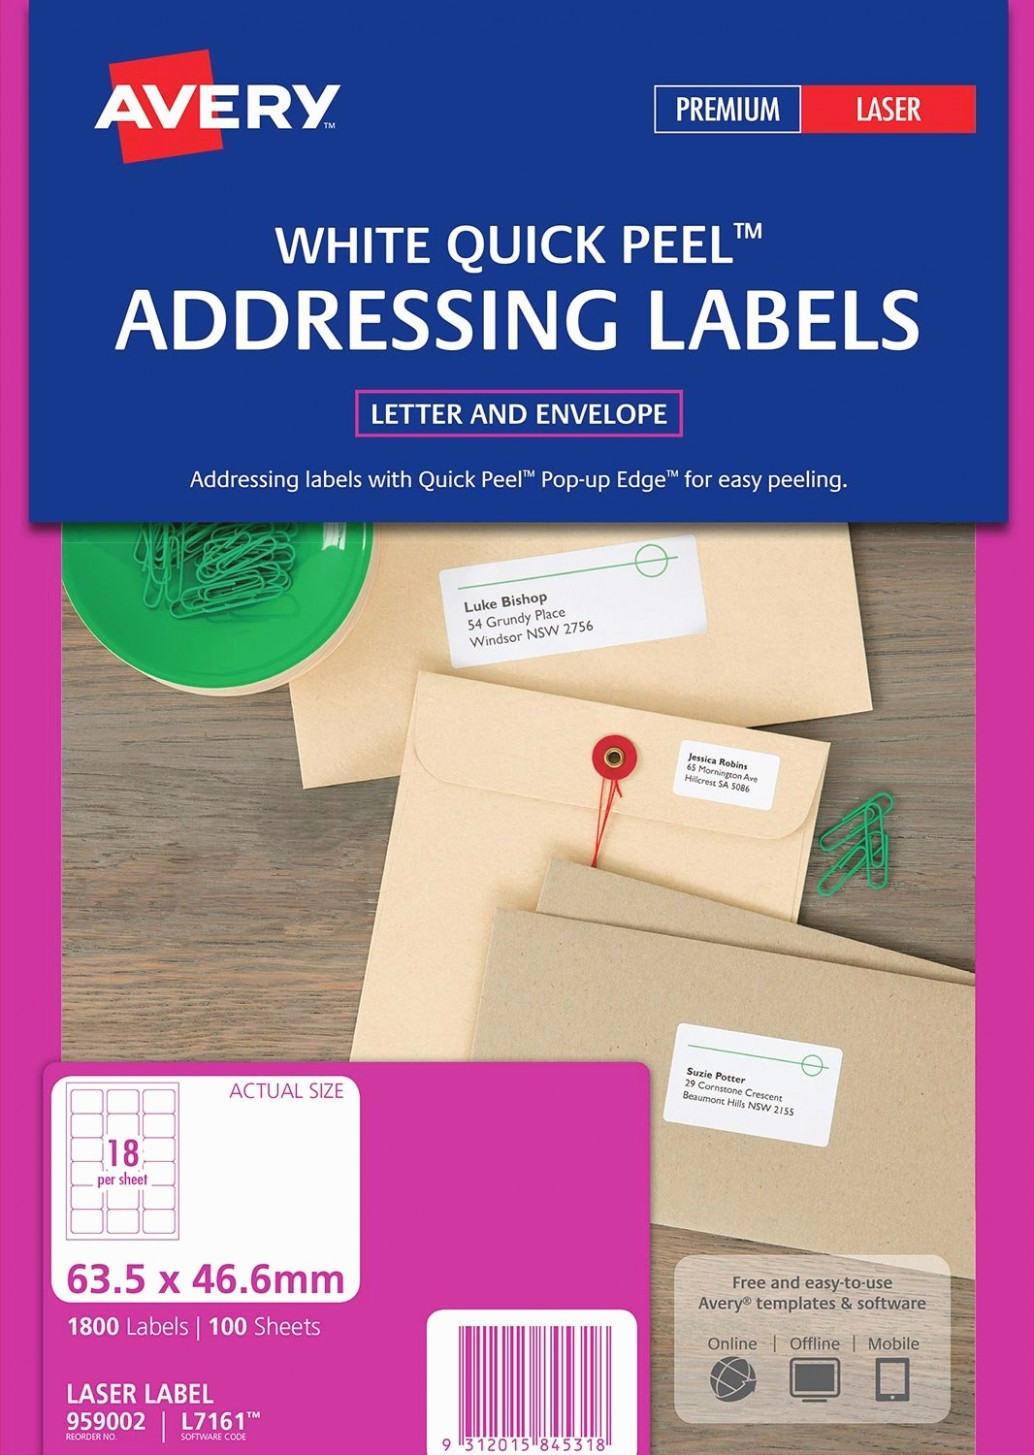 Avery Label 10 Per Page Best Of Ten Great Avery Labels 14 Per